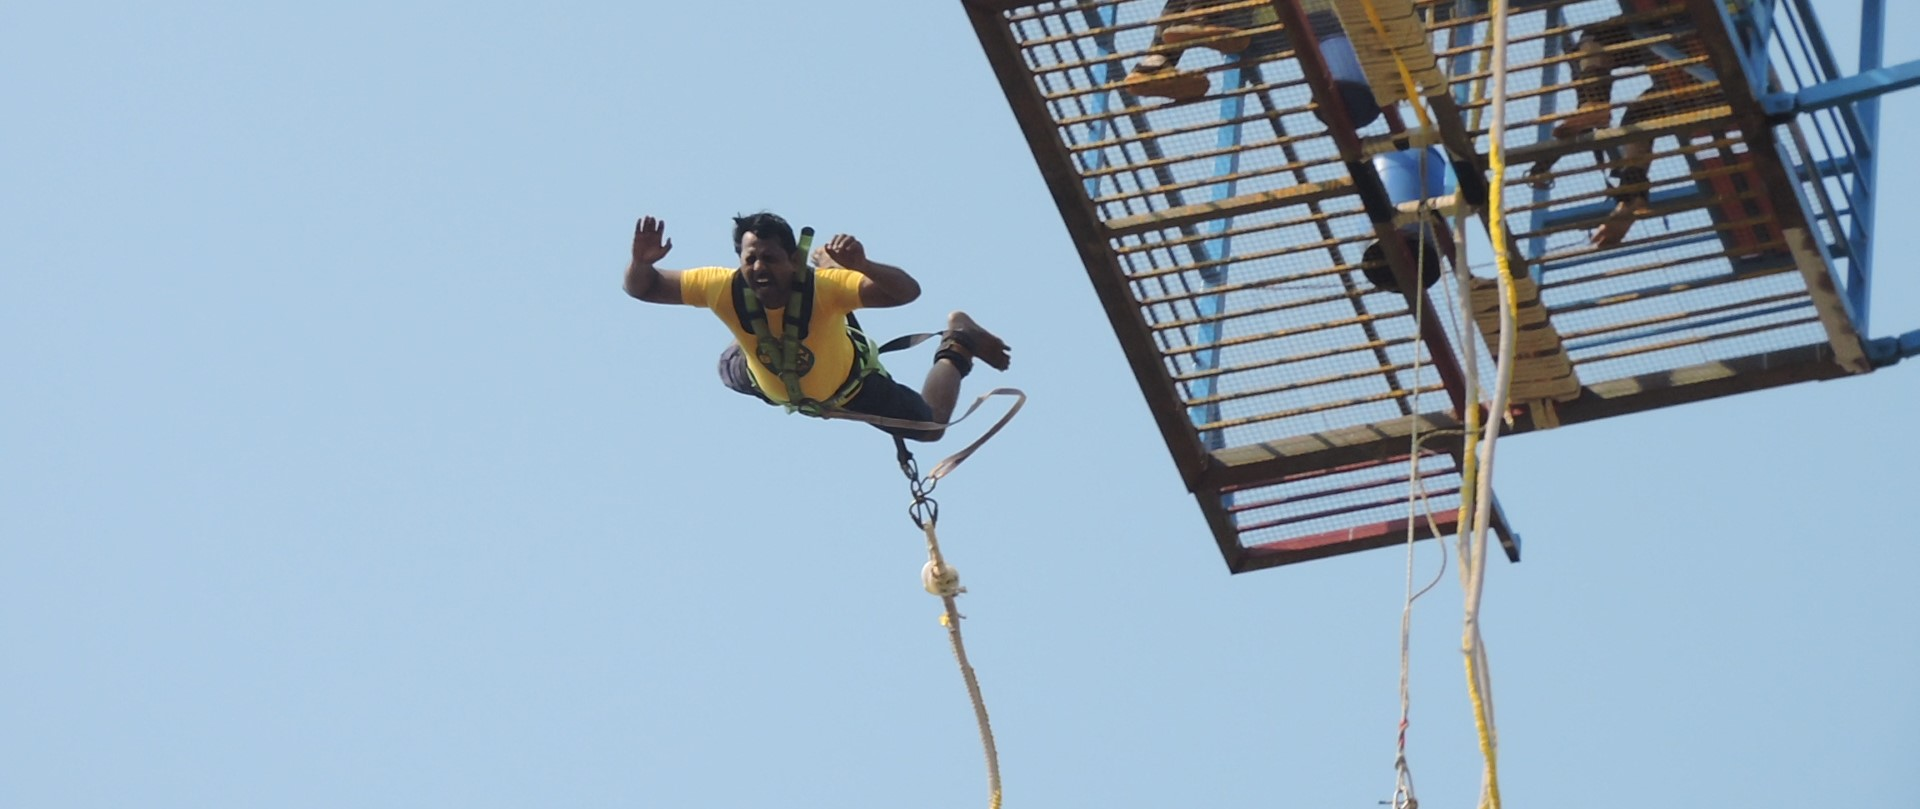 Bungee Jump in Goa. Five Reasons why you should try bungee jumping in Goa